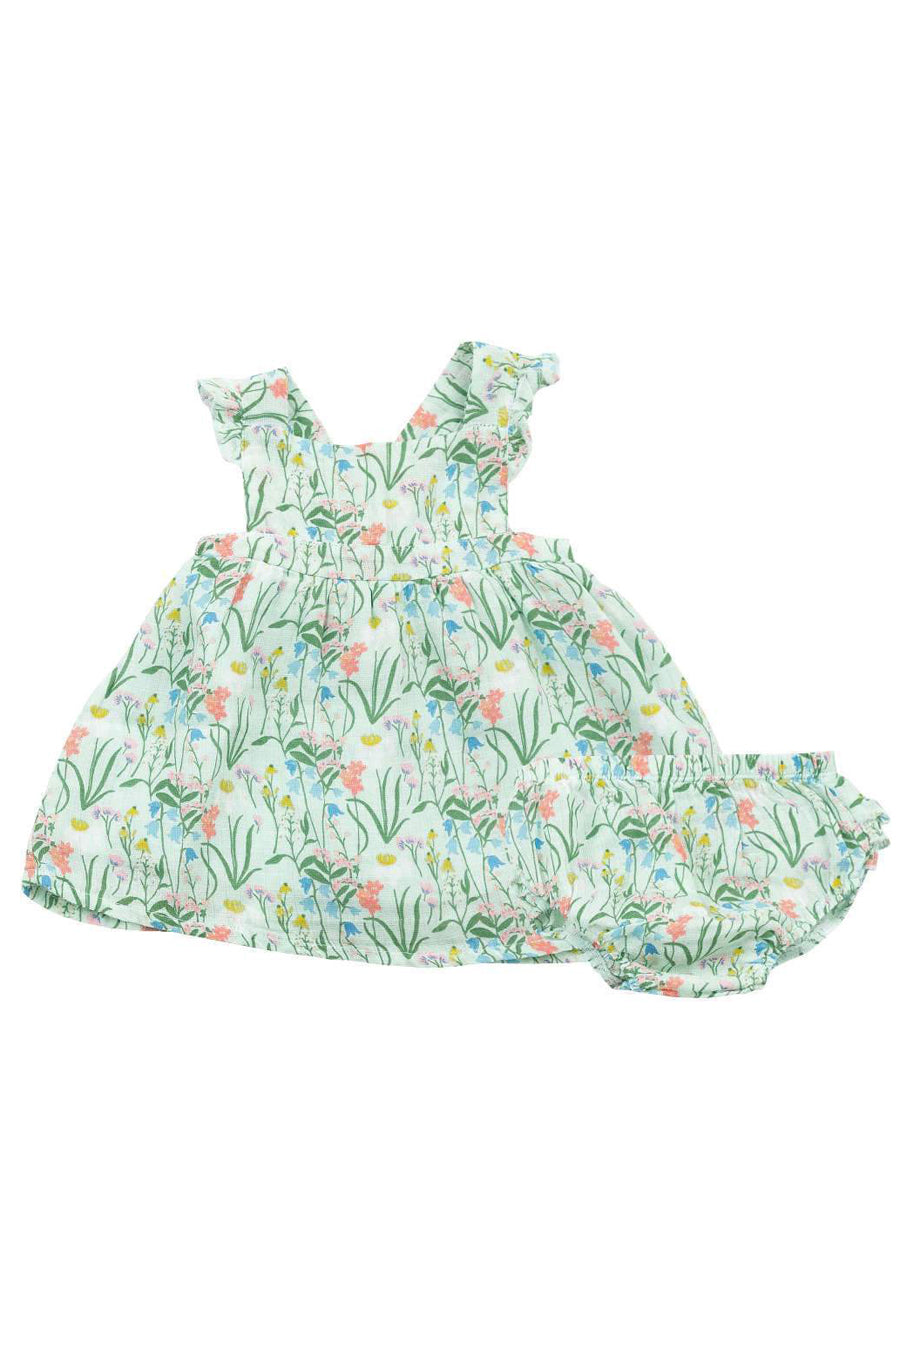 Summer Mornings Sundress + Diaper Cover